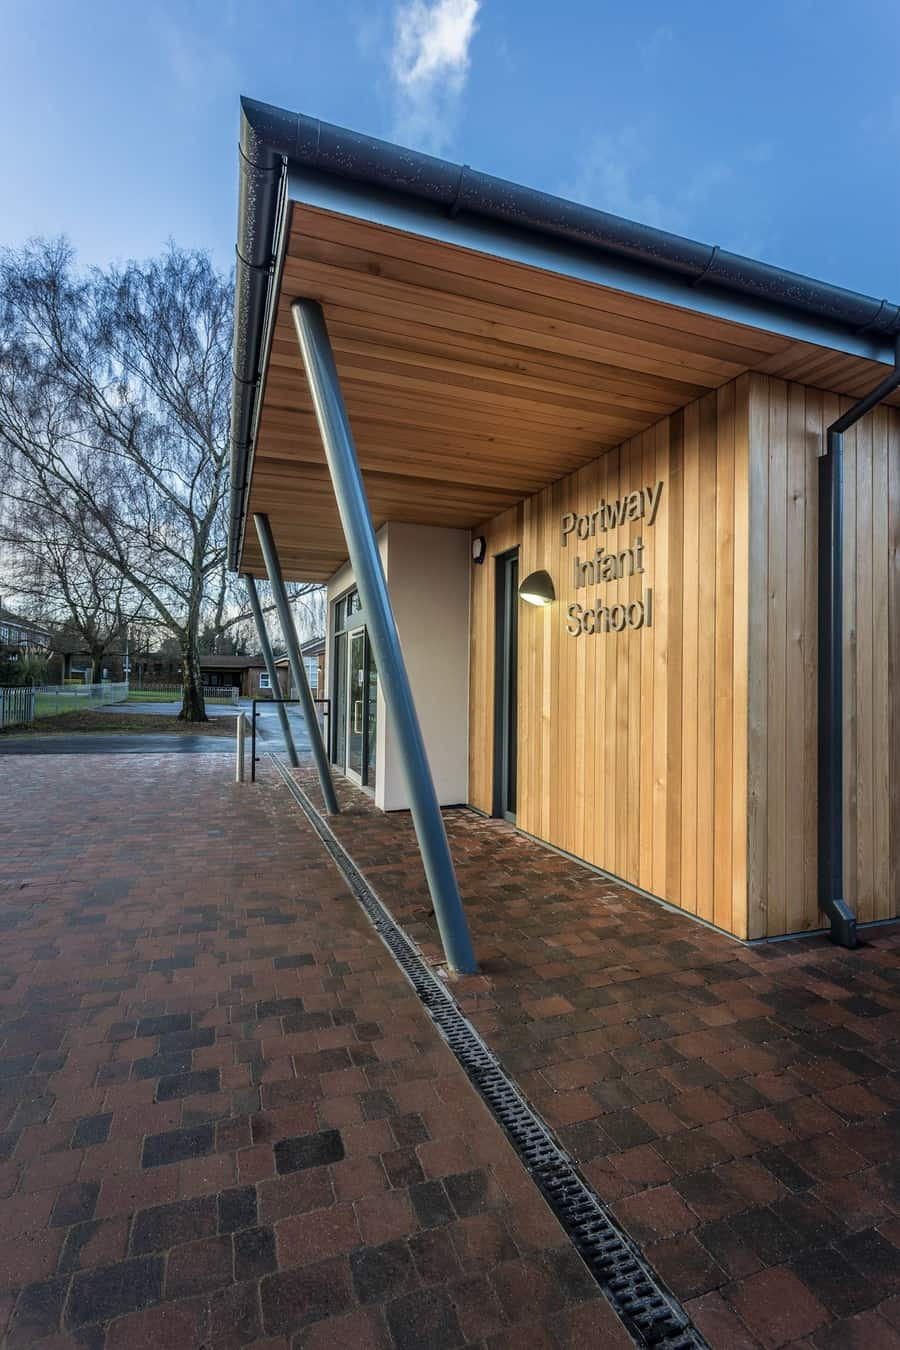 The reception to this Hampshire school by architectural photographer Rick McEvoy